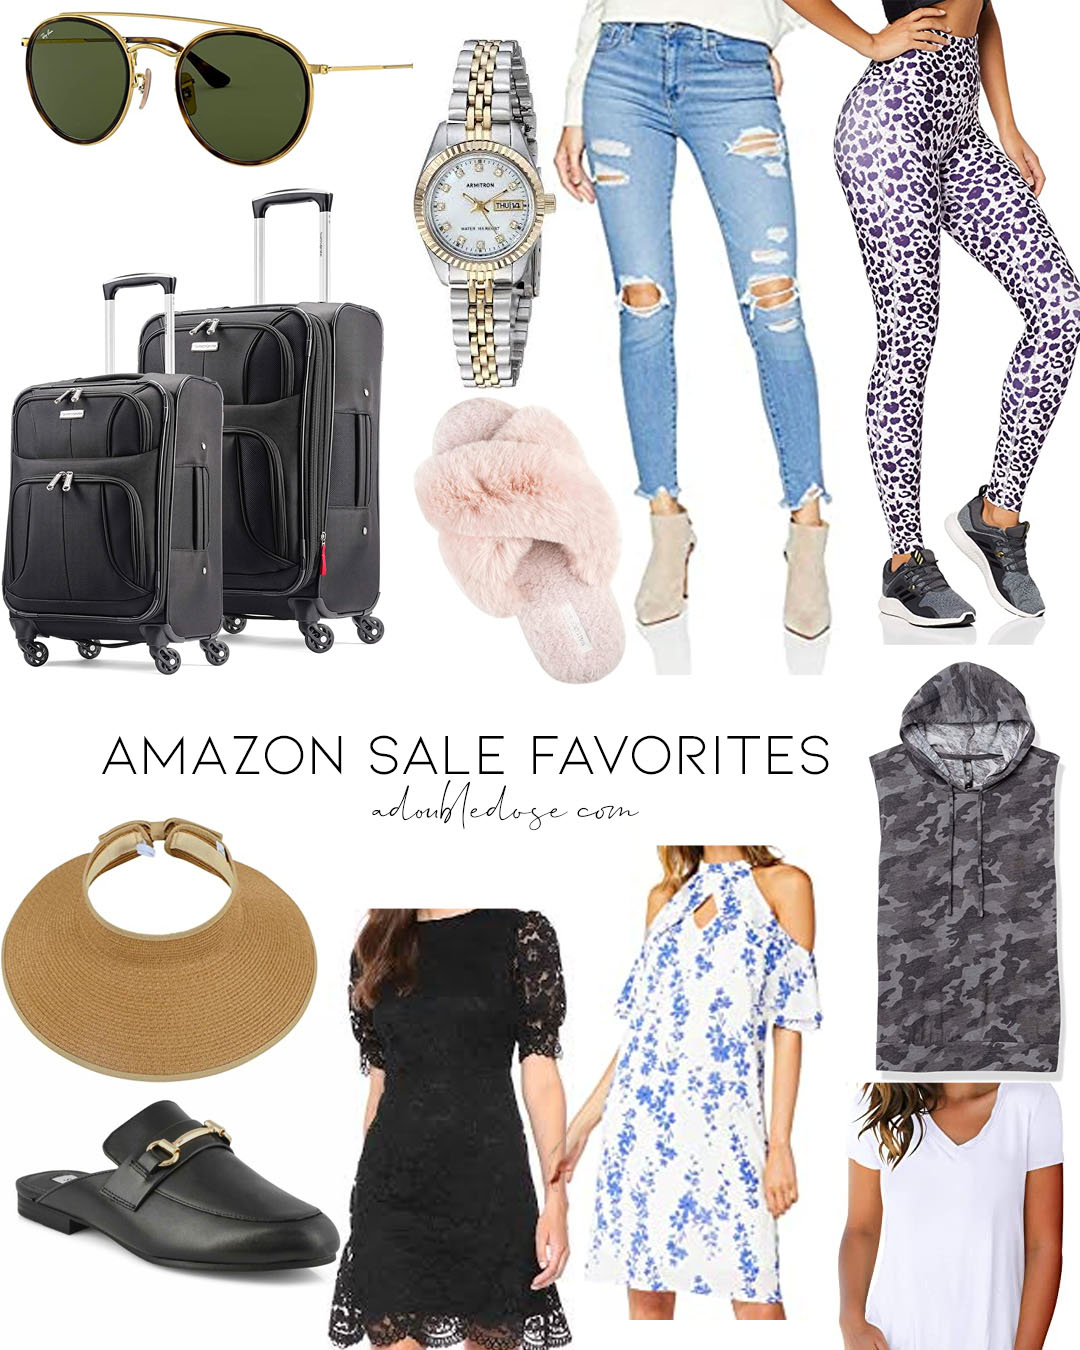 lifestyle and fashion blogger alexis belbel sharing amazon big sale finds including activewear, bike shorts, and tanks, levis jeans,samsonite luggage, visor, cozy slippers, all on sale | adoubledose.com